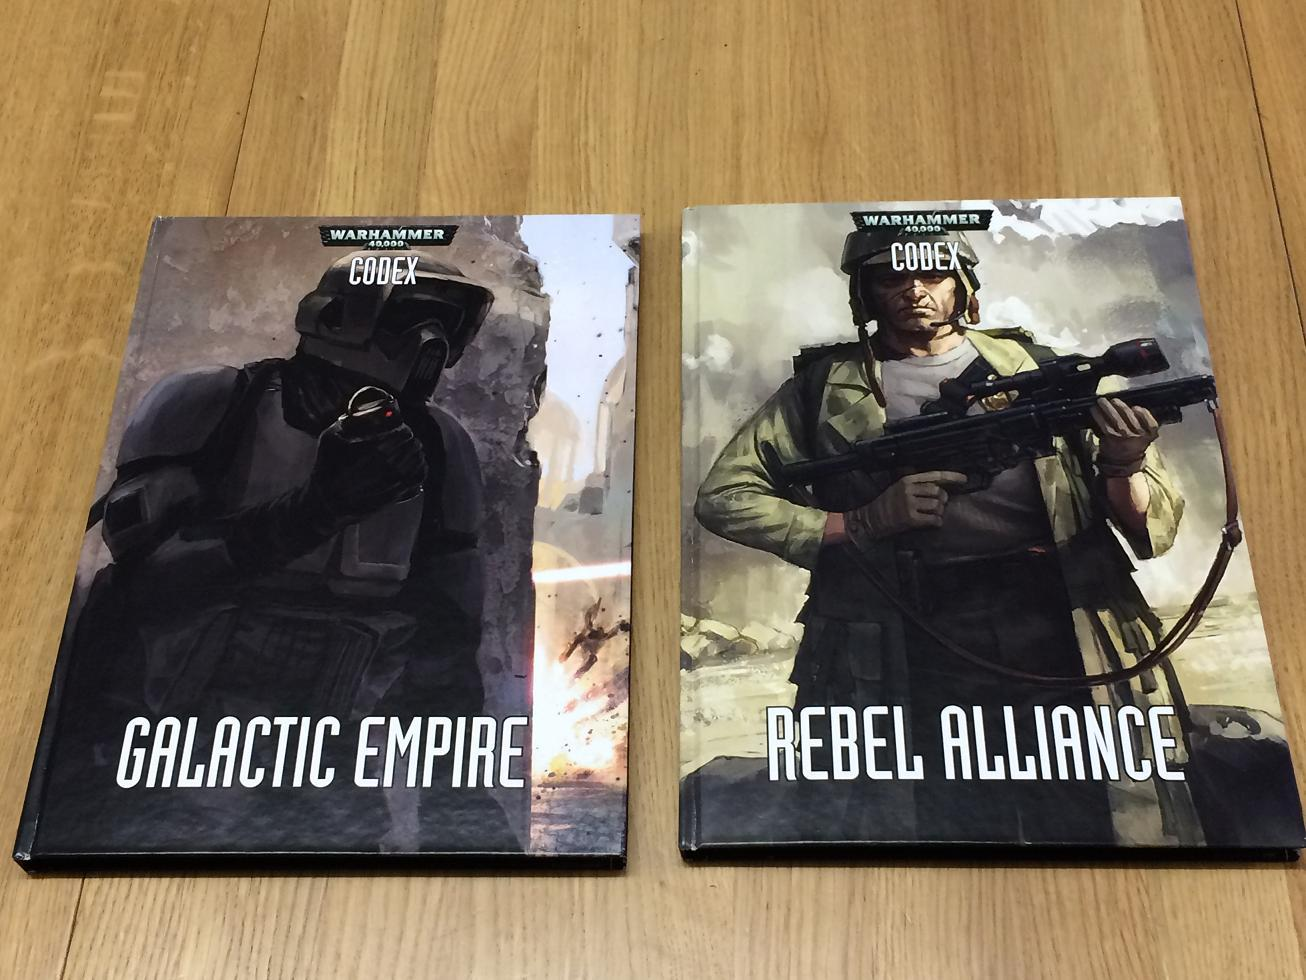 Alliance, Codex, Empire, Rebellion, Rebels, Star Wars